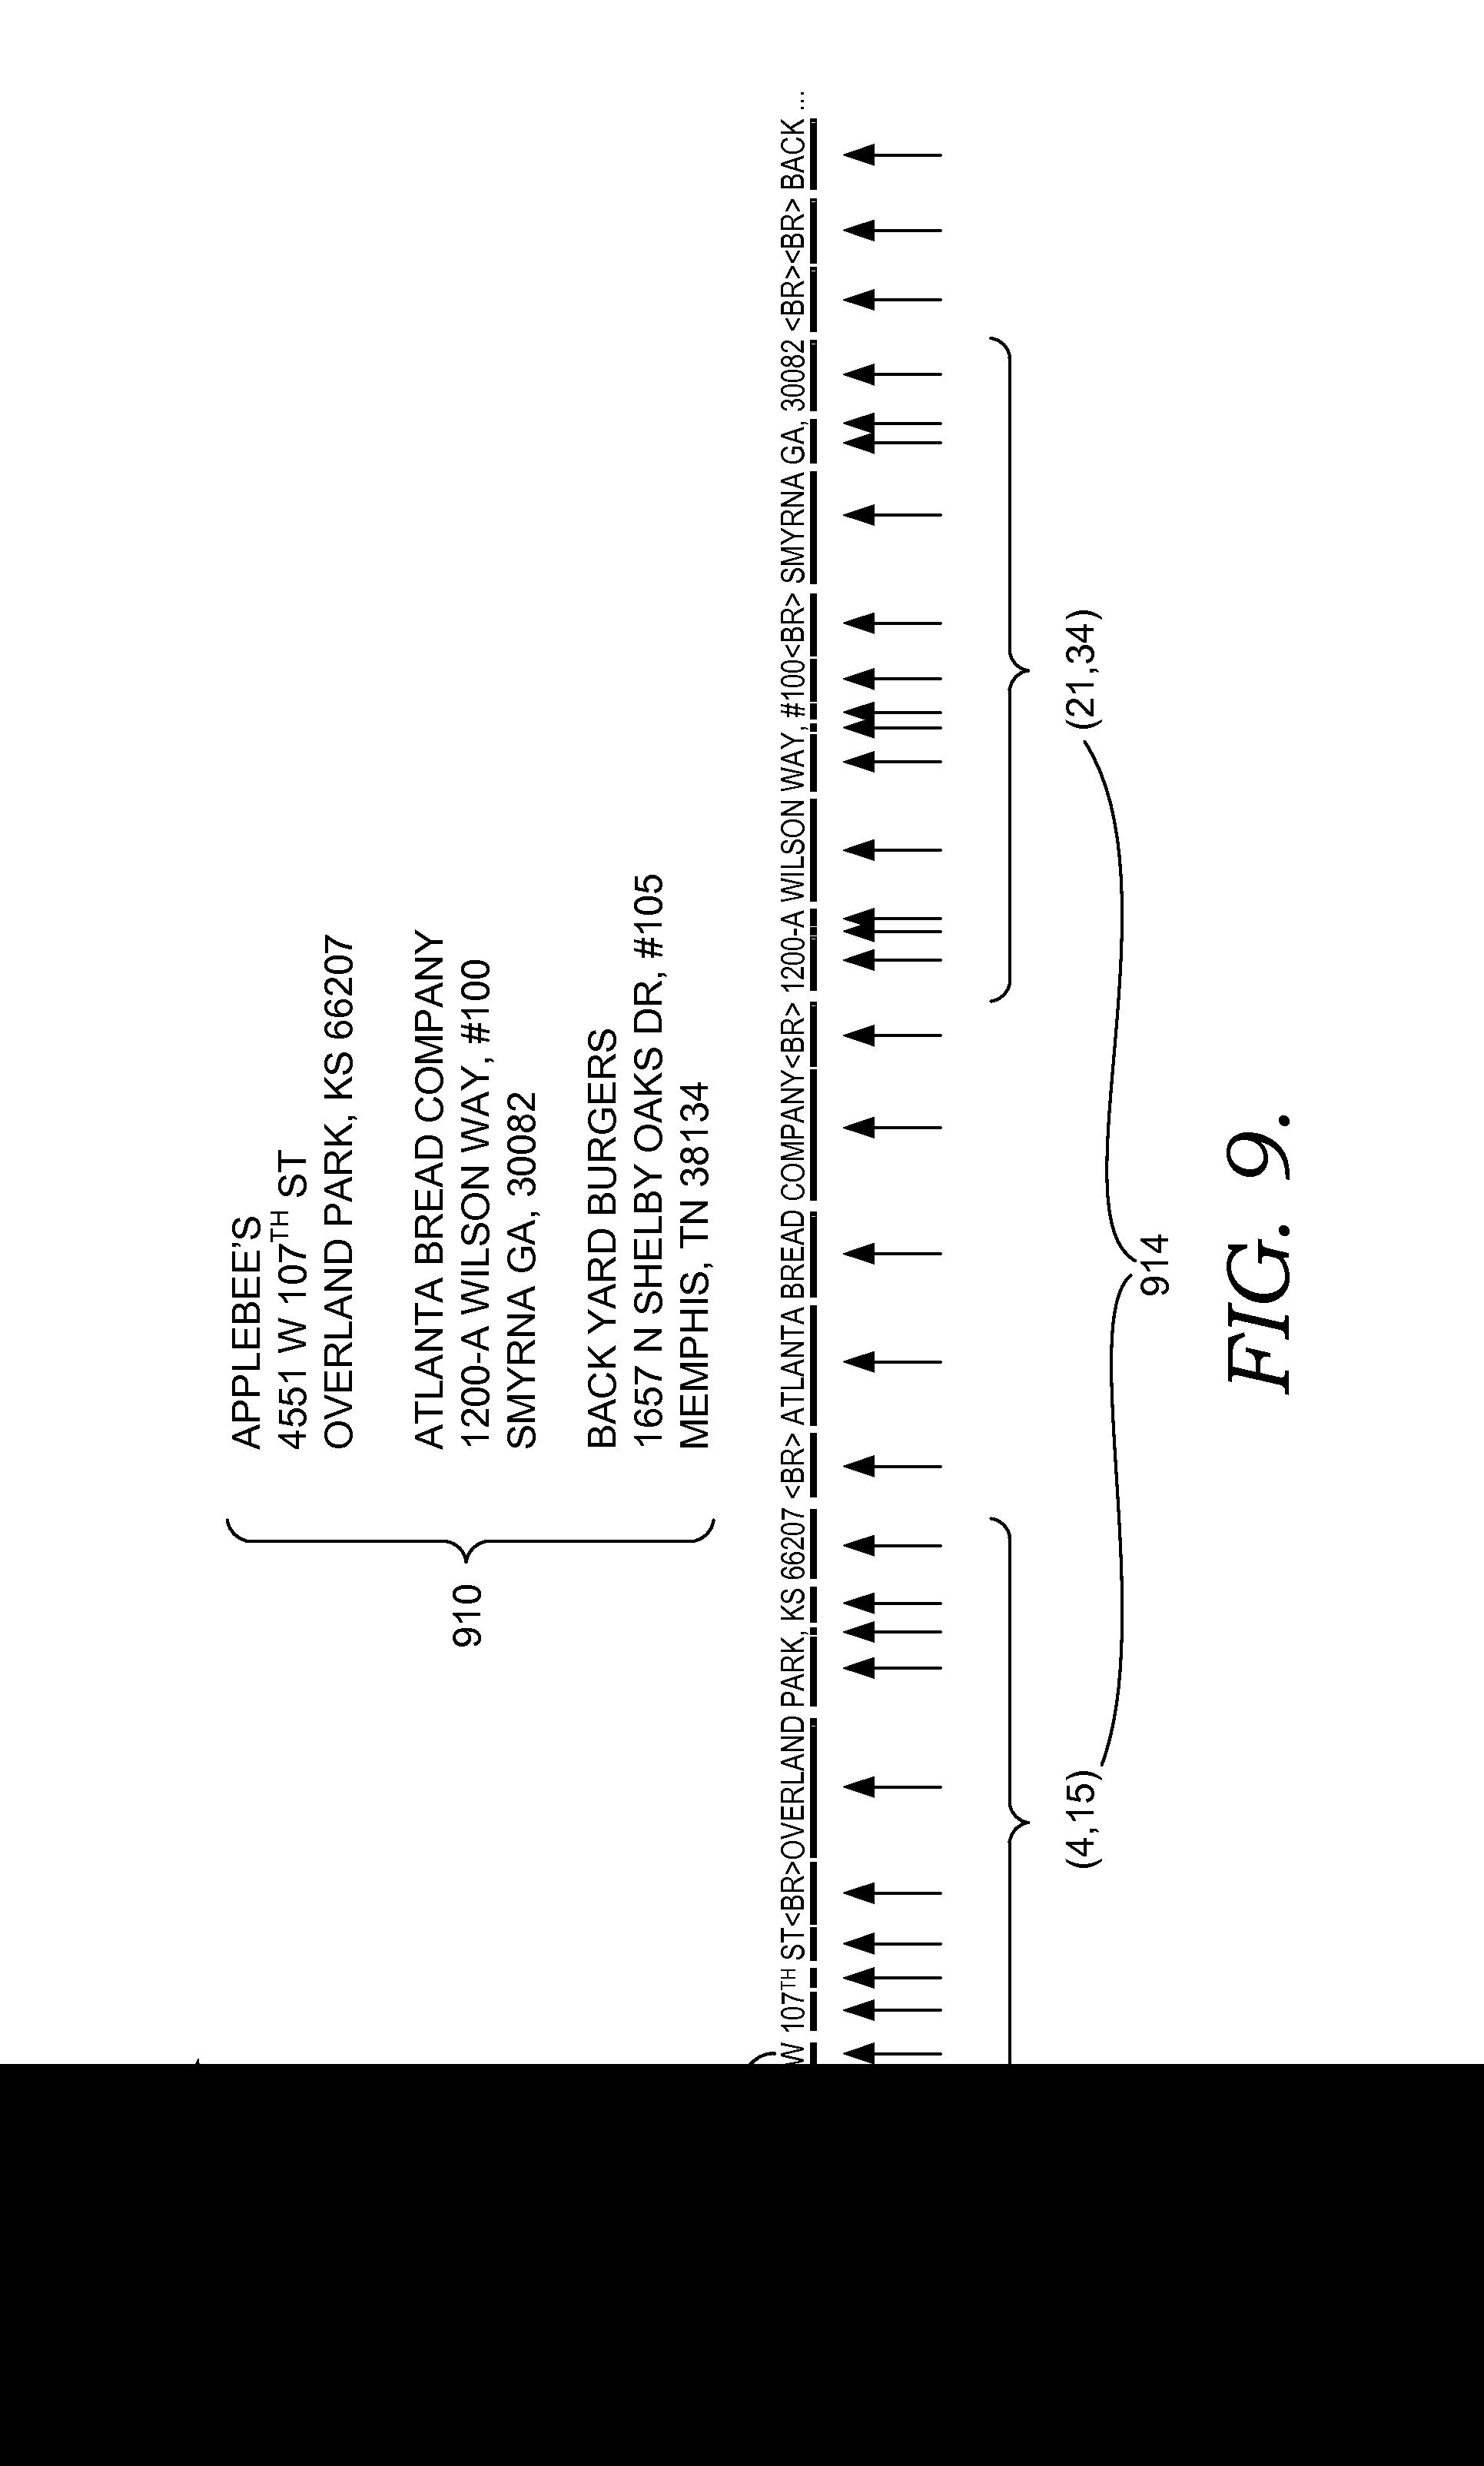 brevet us20150019460 active labeling for computer human patent drawing